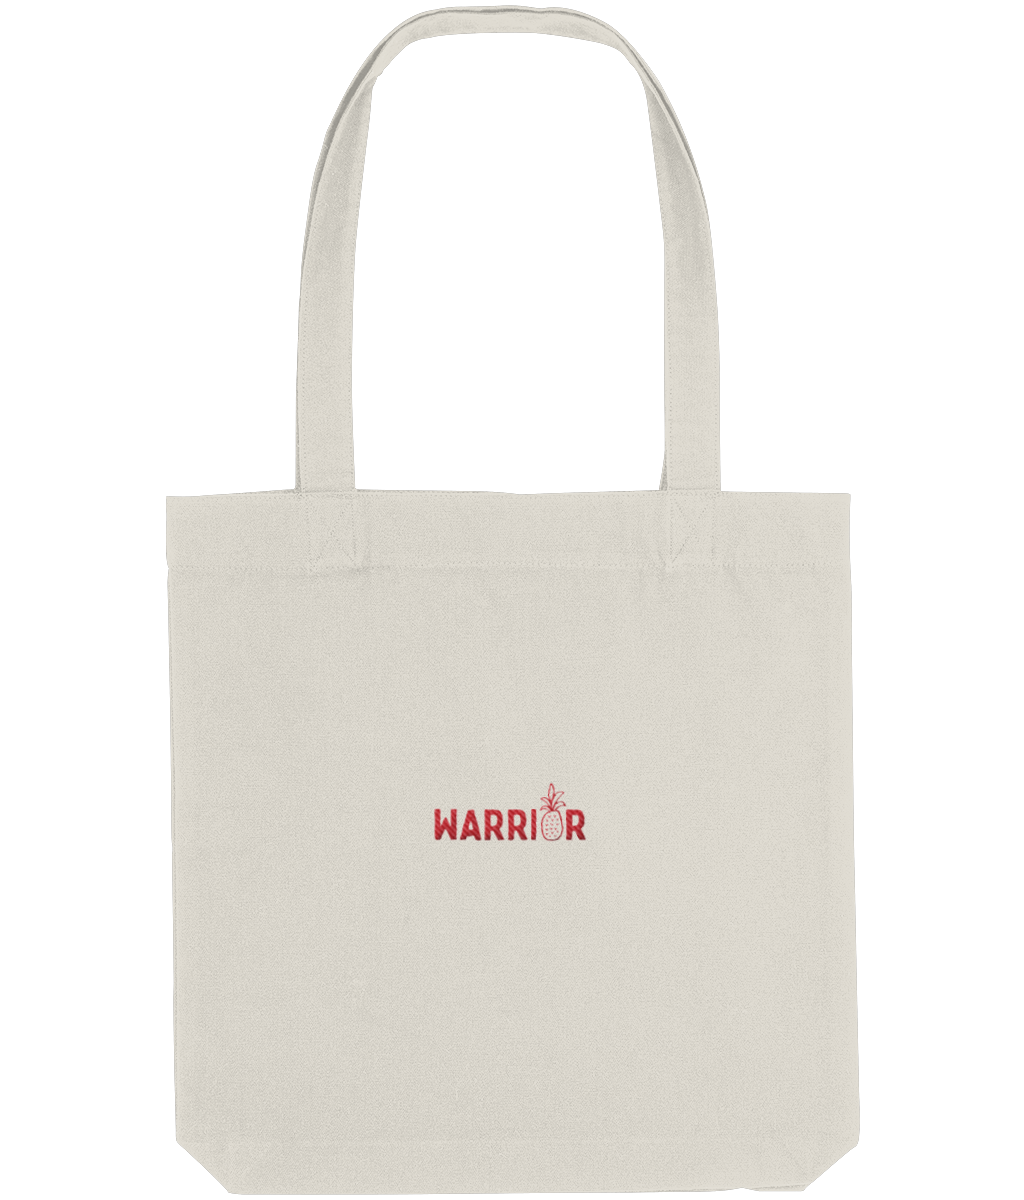 Warrior Emroidered Tote